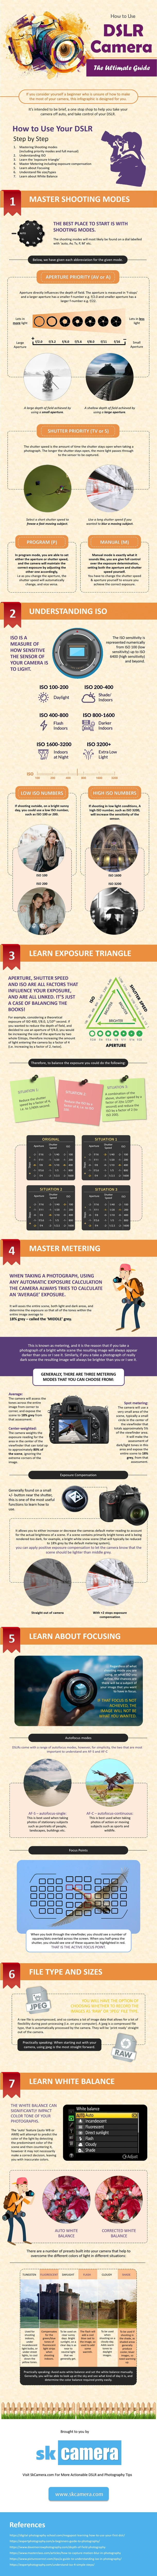 The Comprehensive Reference Guide for Mastering DSLR Photography - Infographic